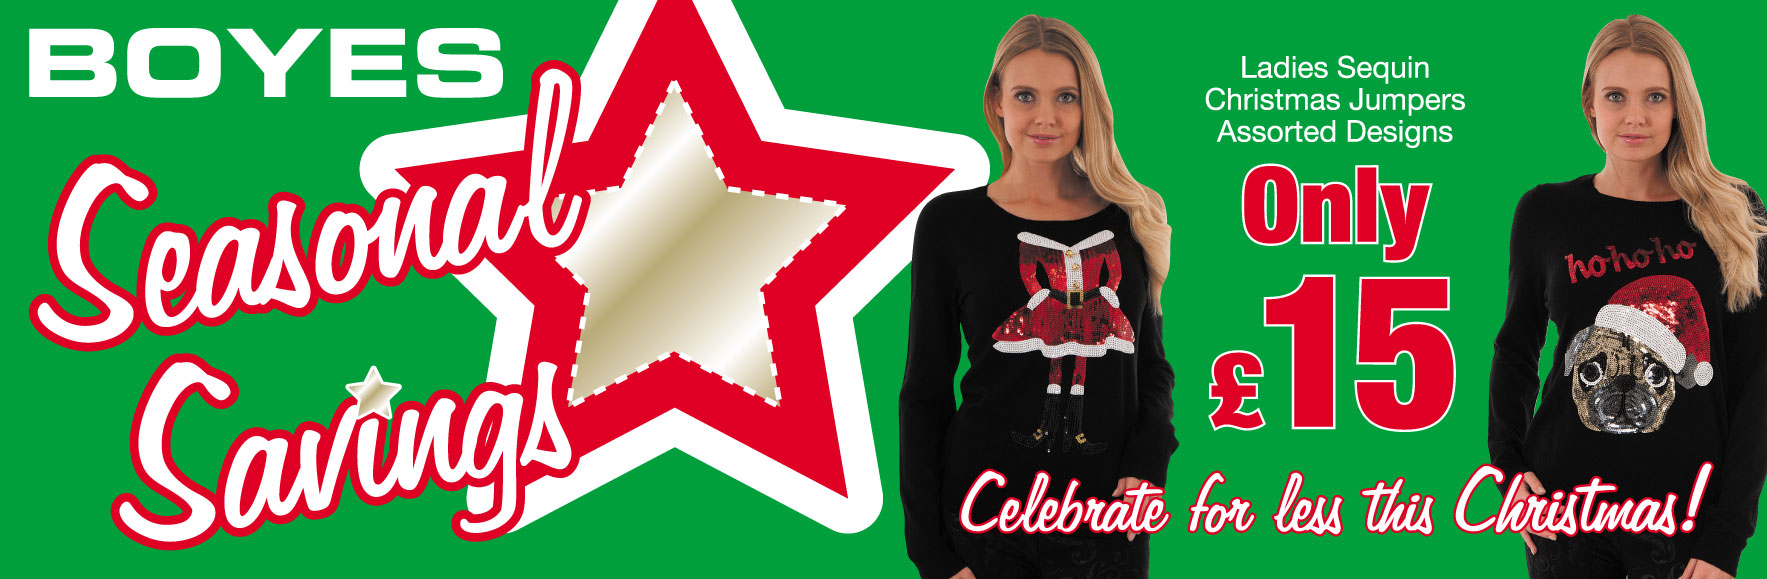 Ladies Sequin Christmas Jumpers only £15!